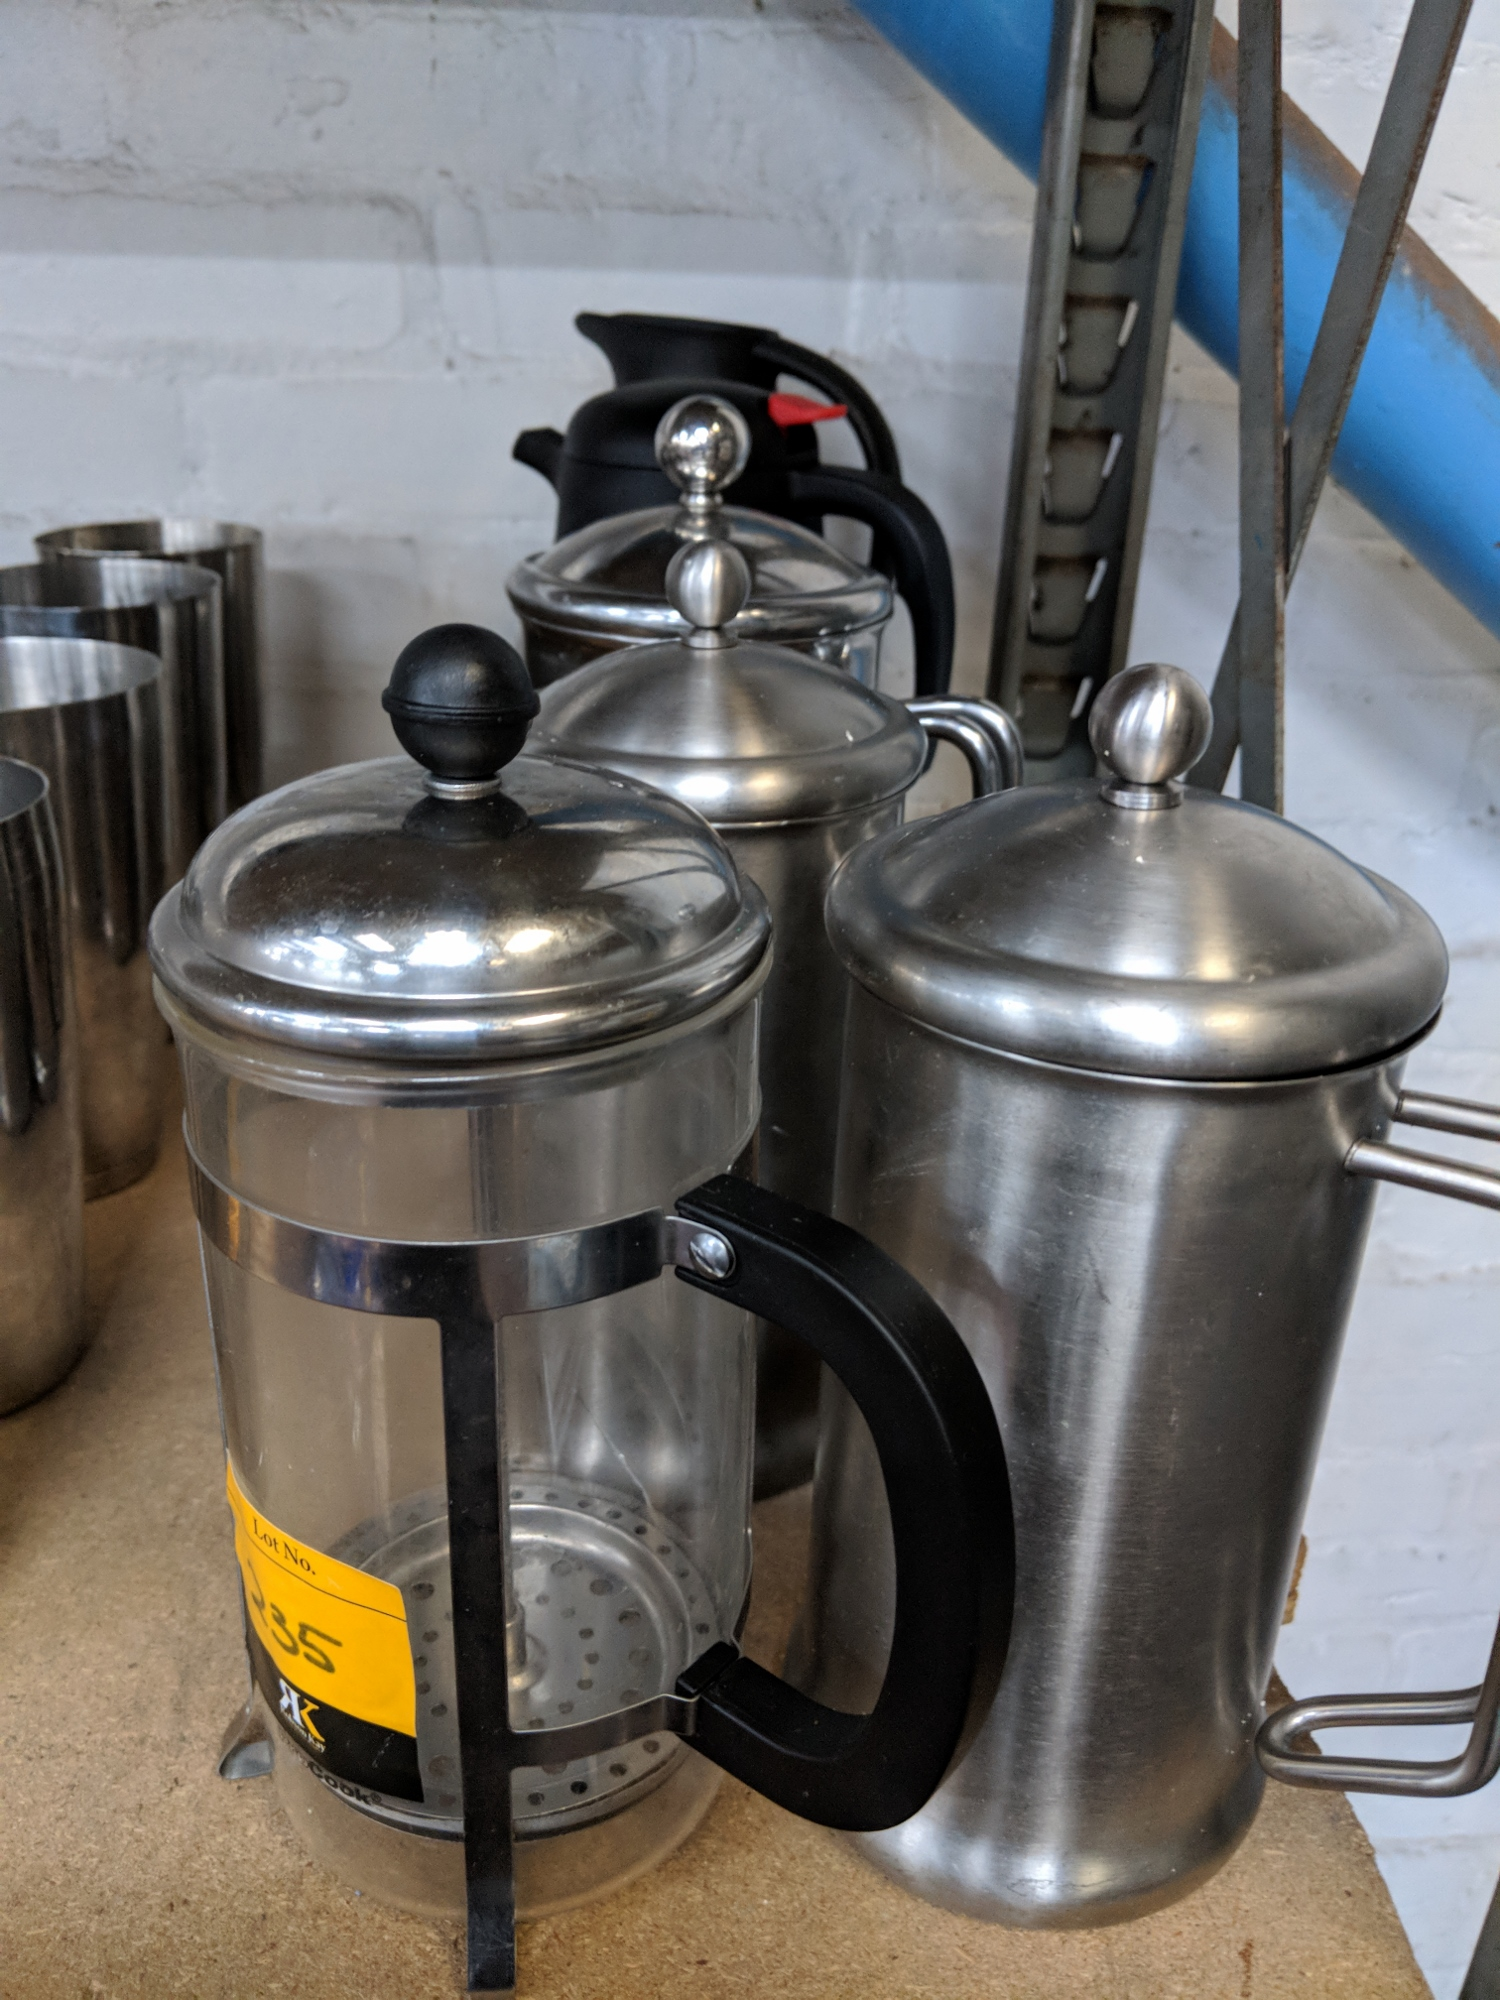 6 off assorted cafetieres thermos jugs and similar this is one of a number of lots that forms t. Black Bedroom Furniture Sets. Home Design Ideas